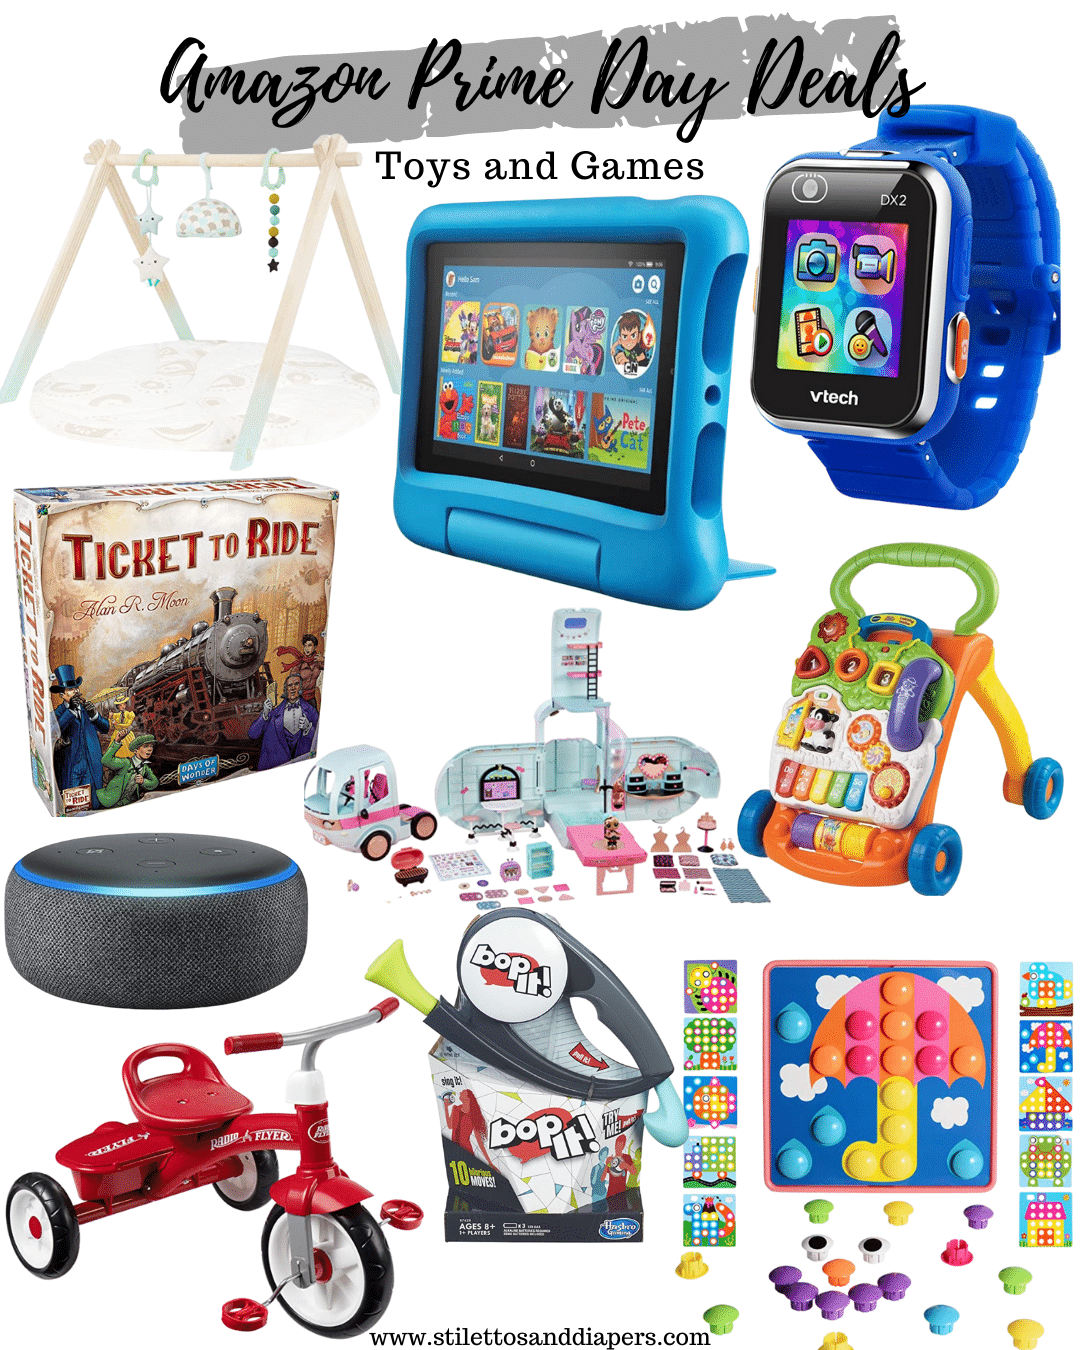 Best Prime Day Toys and Games 2020, Stilettos and Diapers